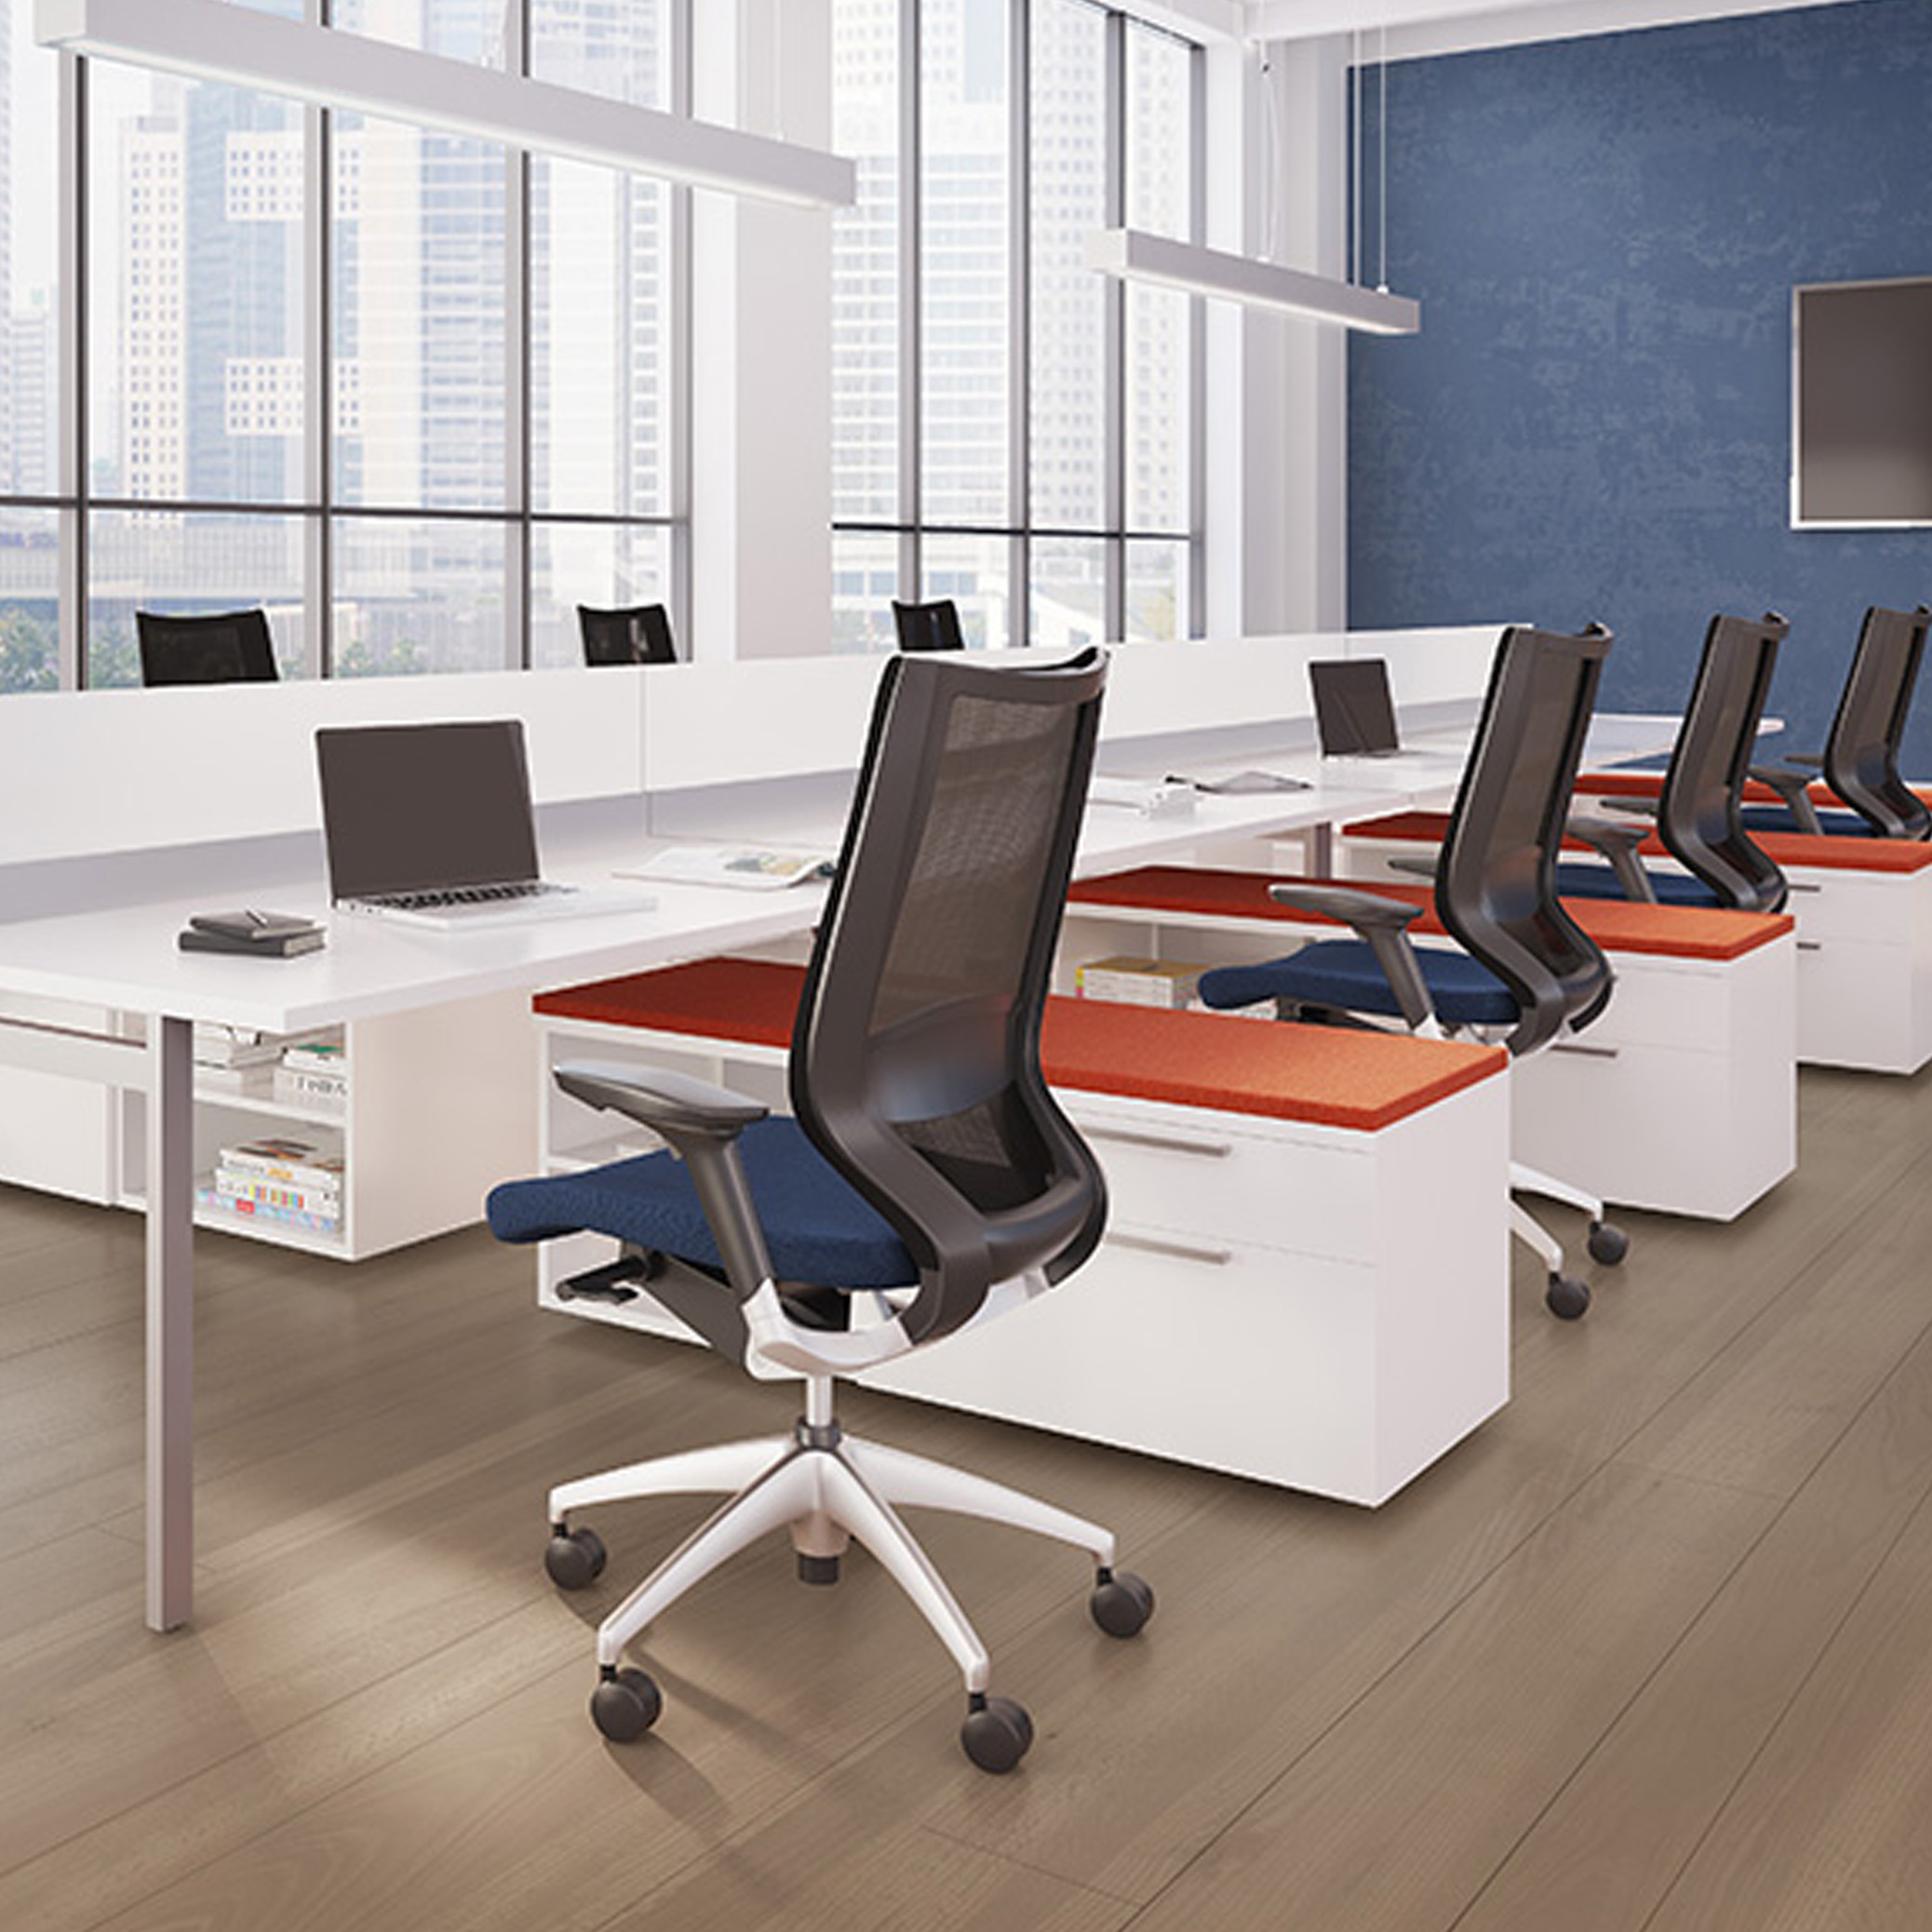 staks benching - office furniture chicago | new | rental | used